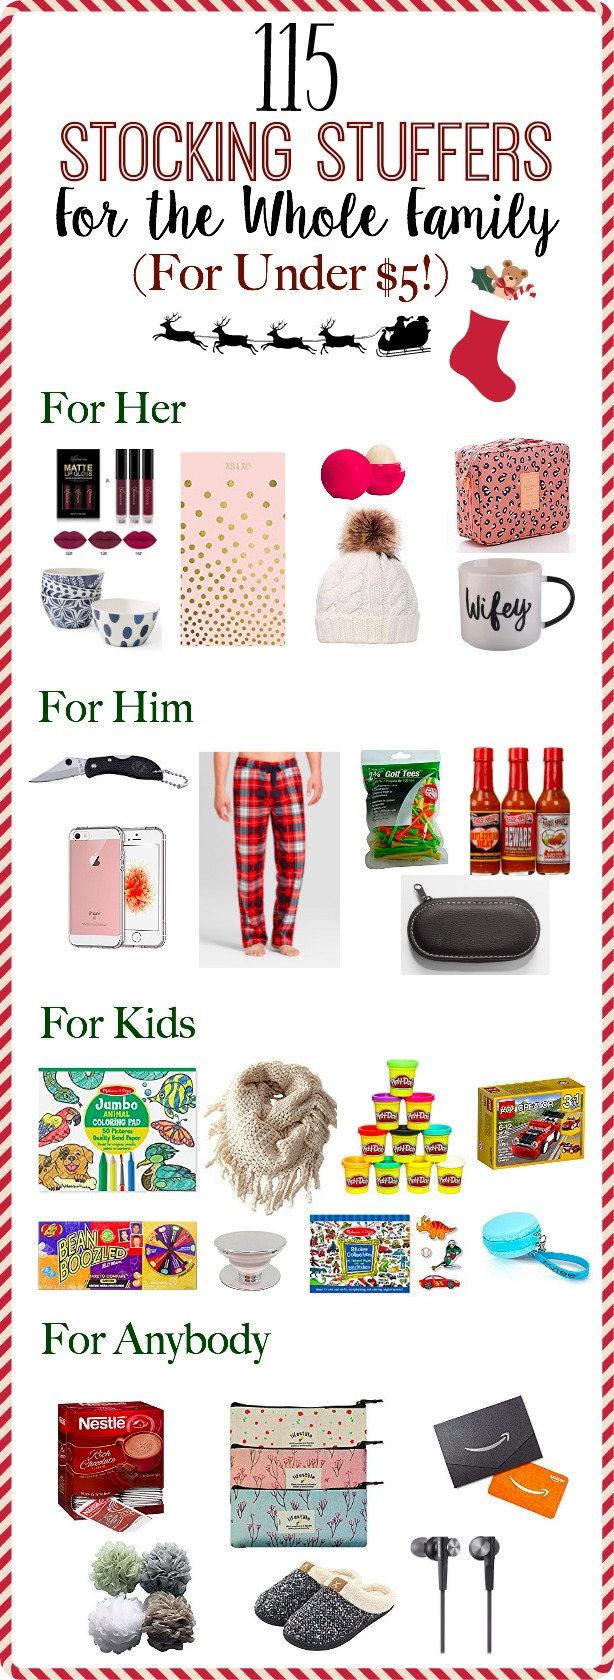 55 Cheap Stocking Stuffers for $5 That